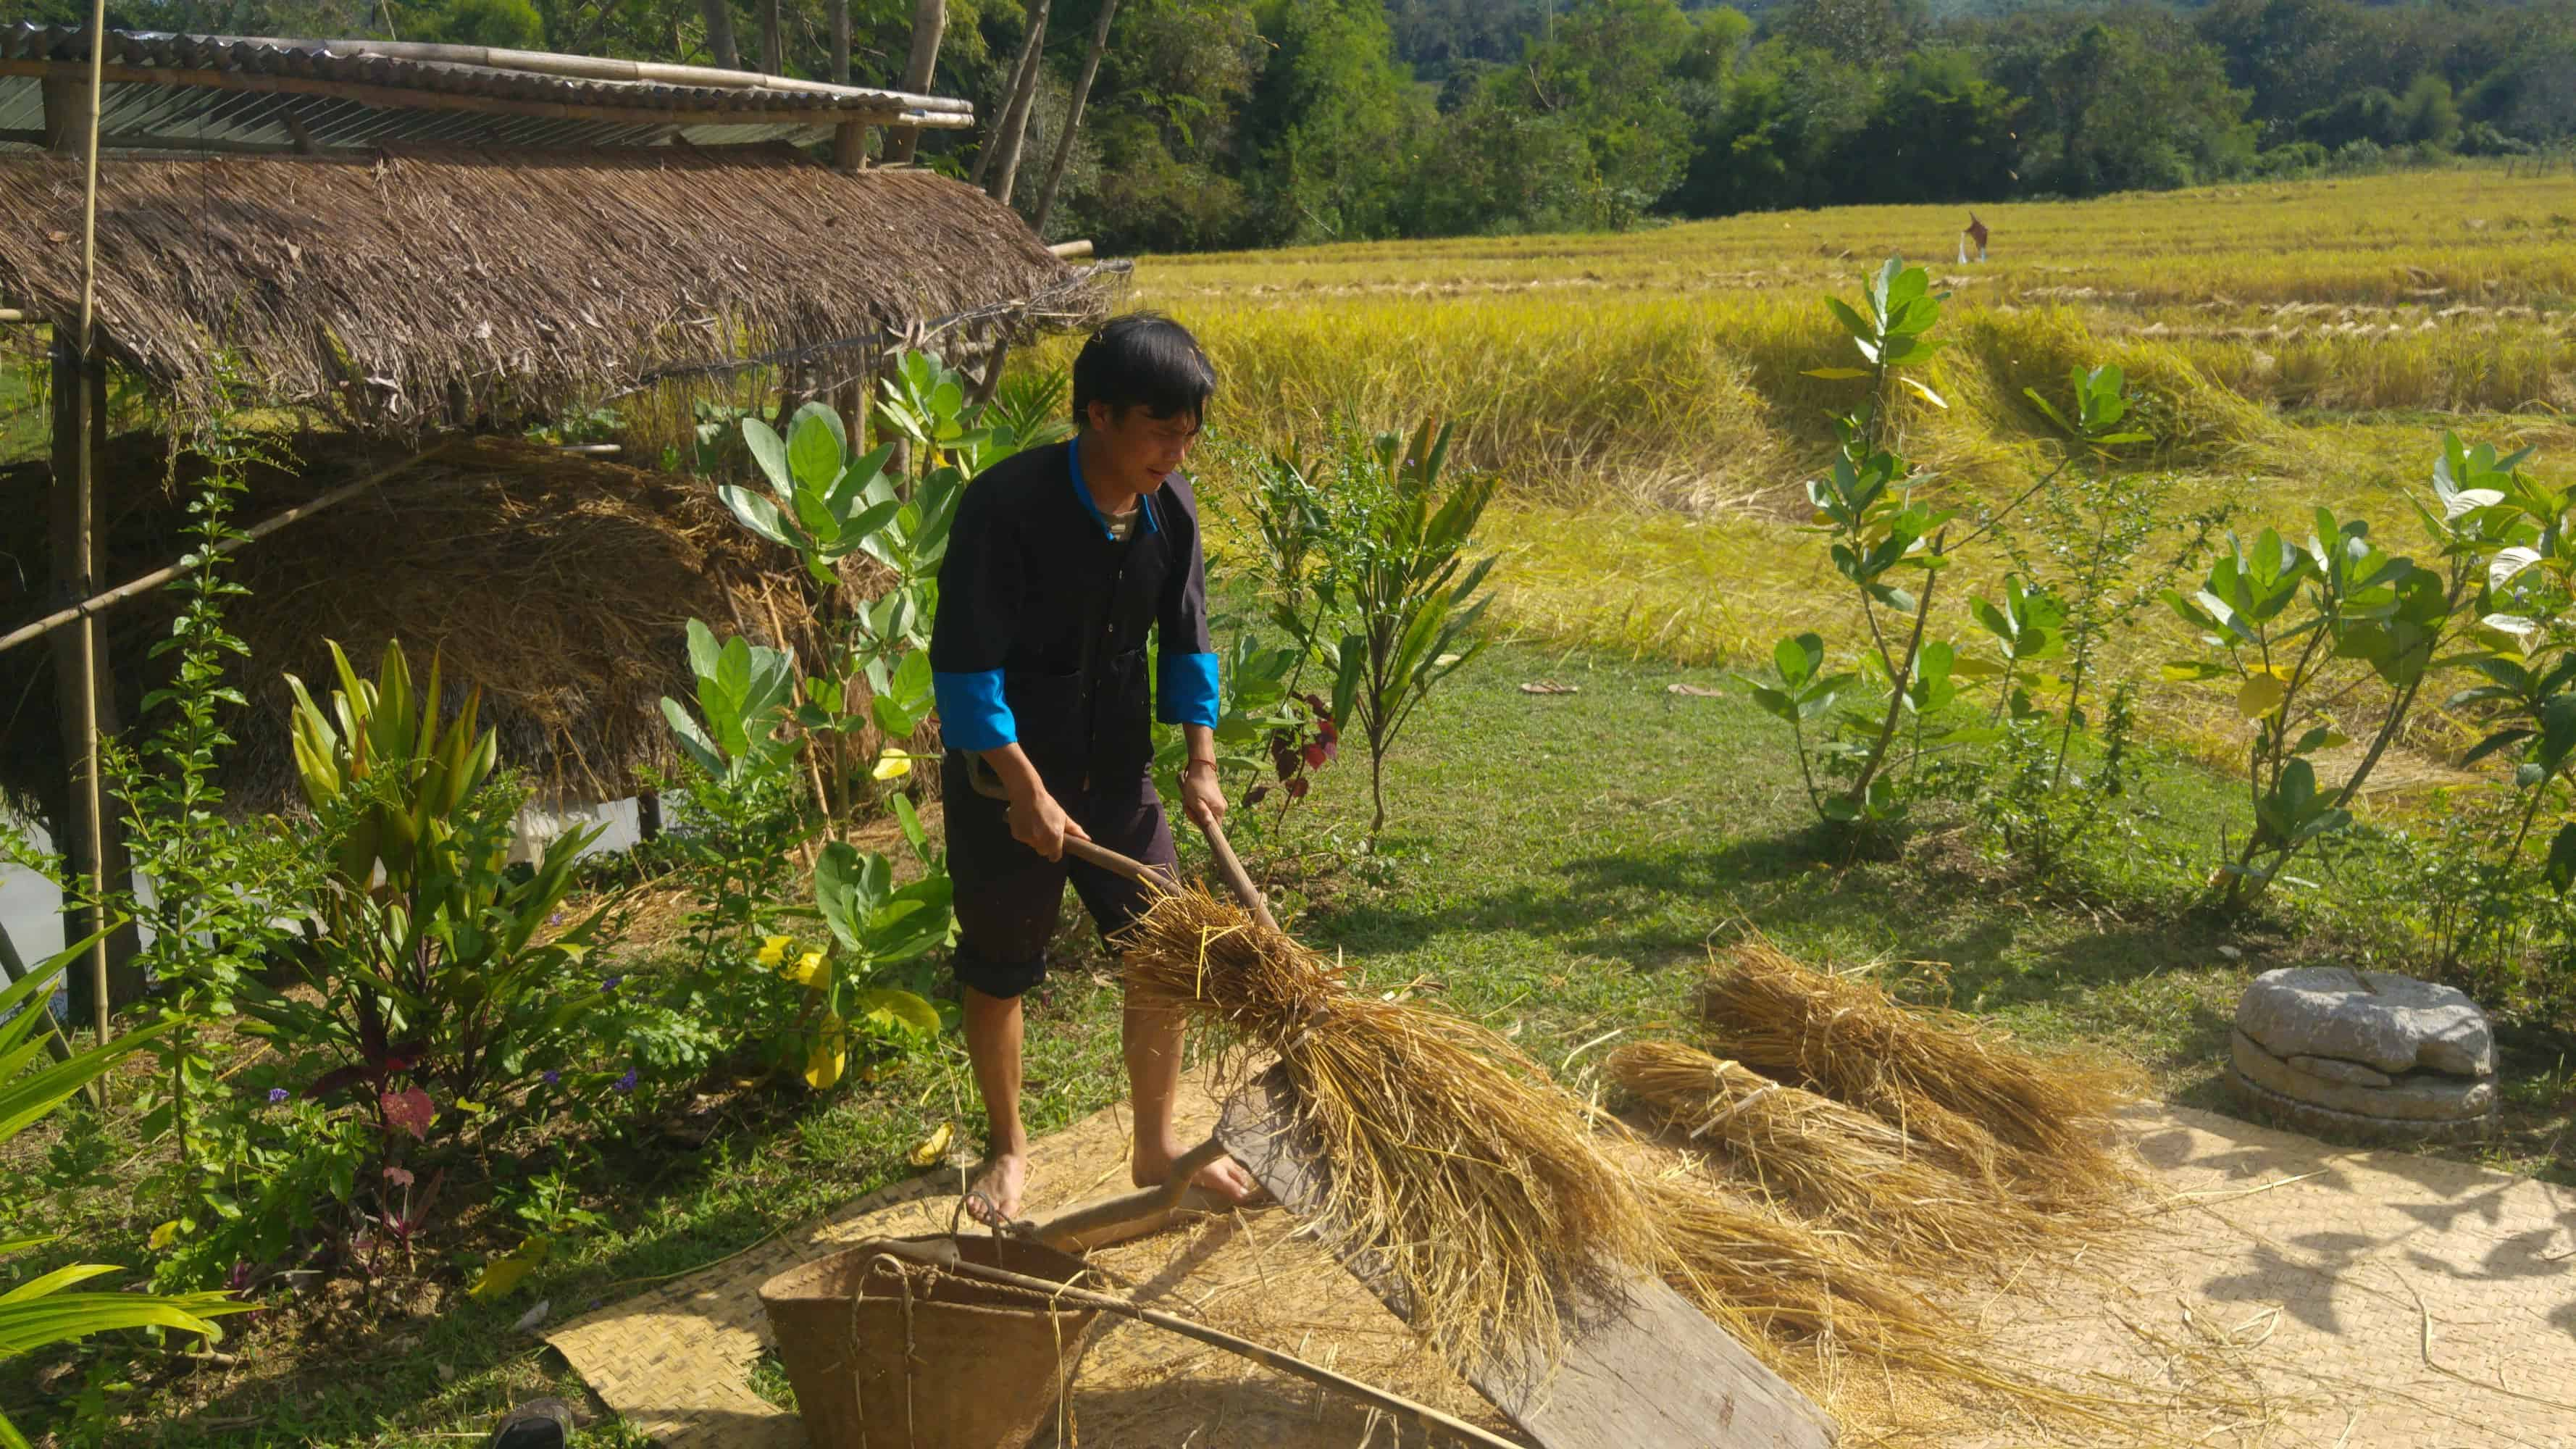 Rice Farming in the Living Land Farm in a rural part of Laos